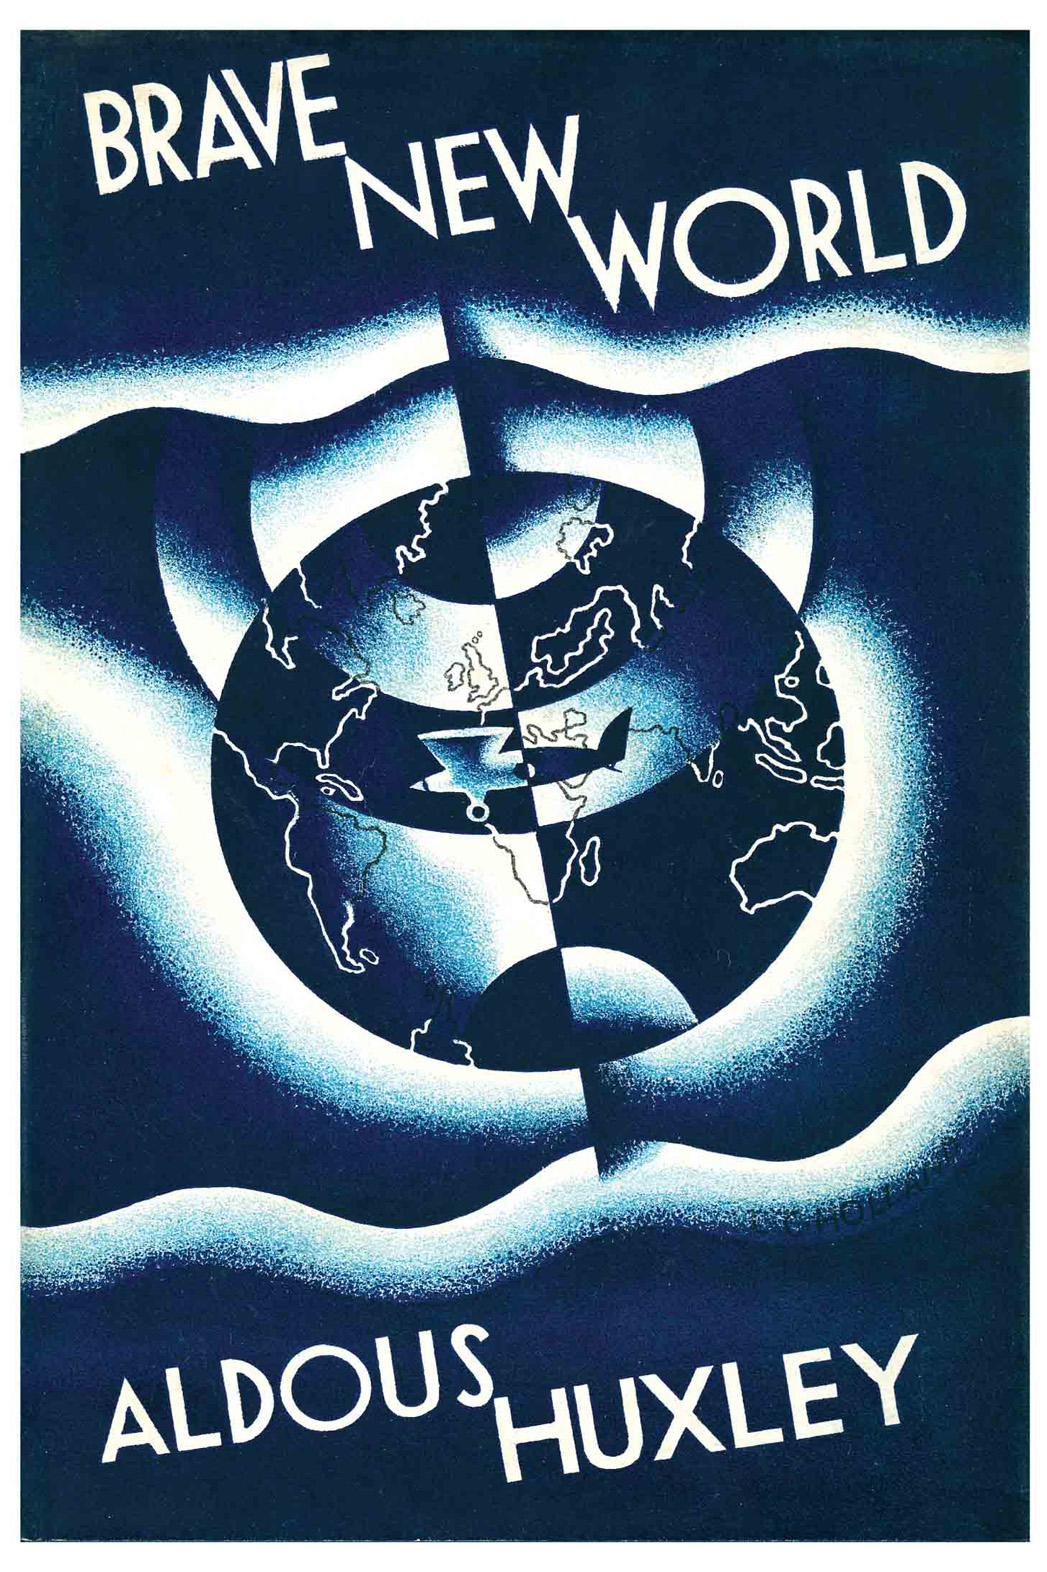 a literary comparison of a brave new world by aldous huxley and 1984 by george orwell